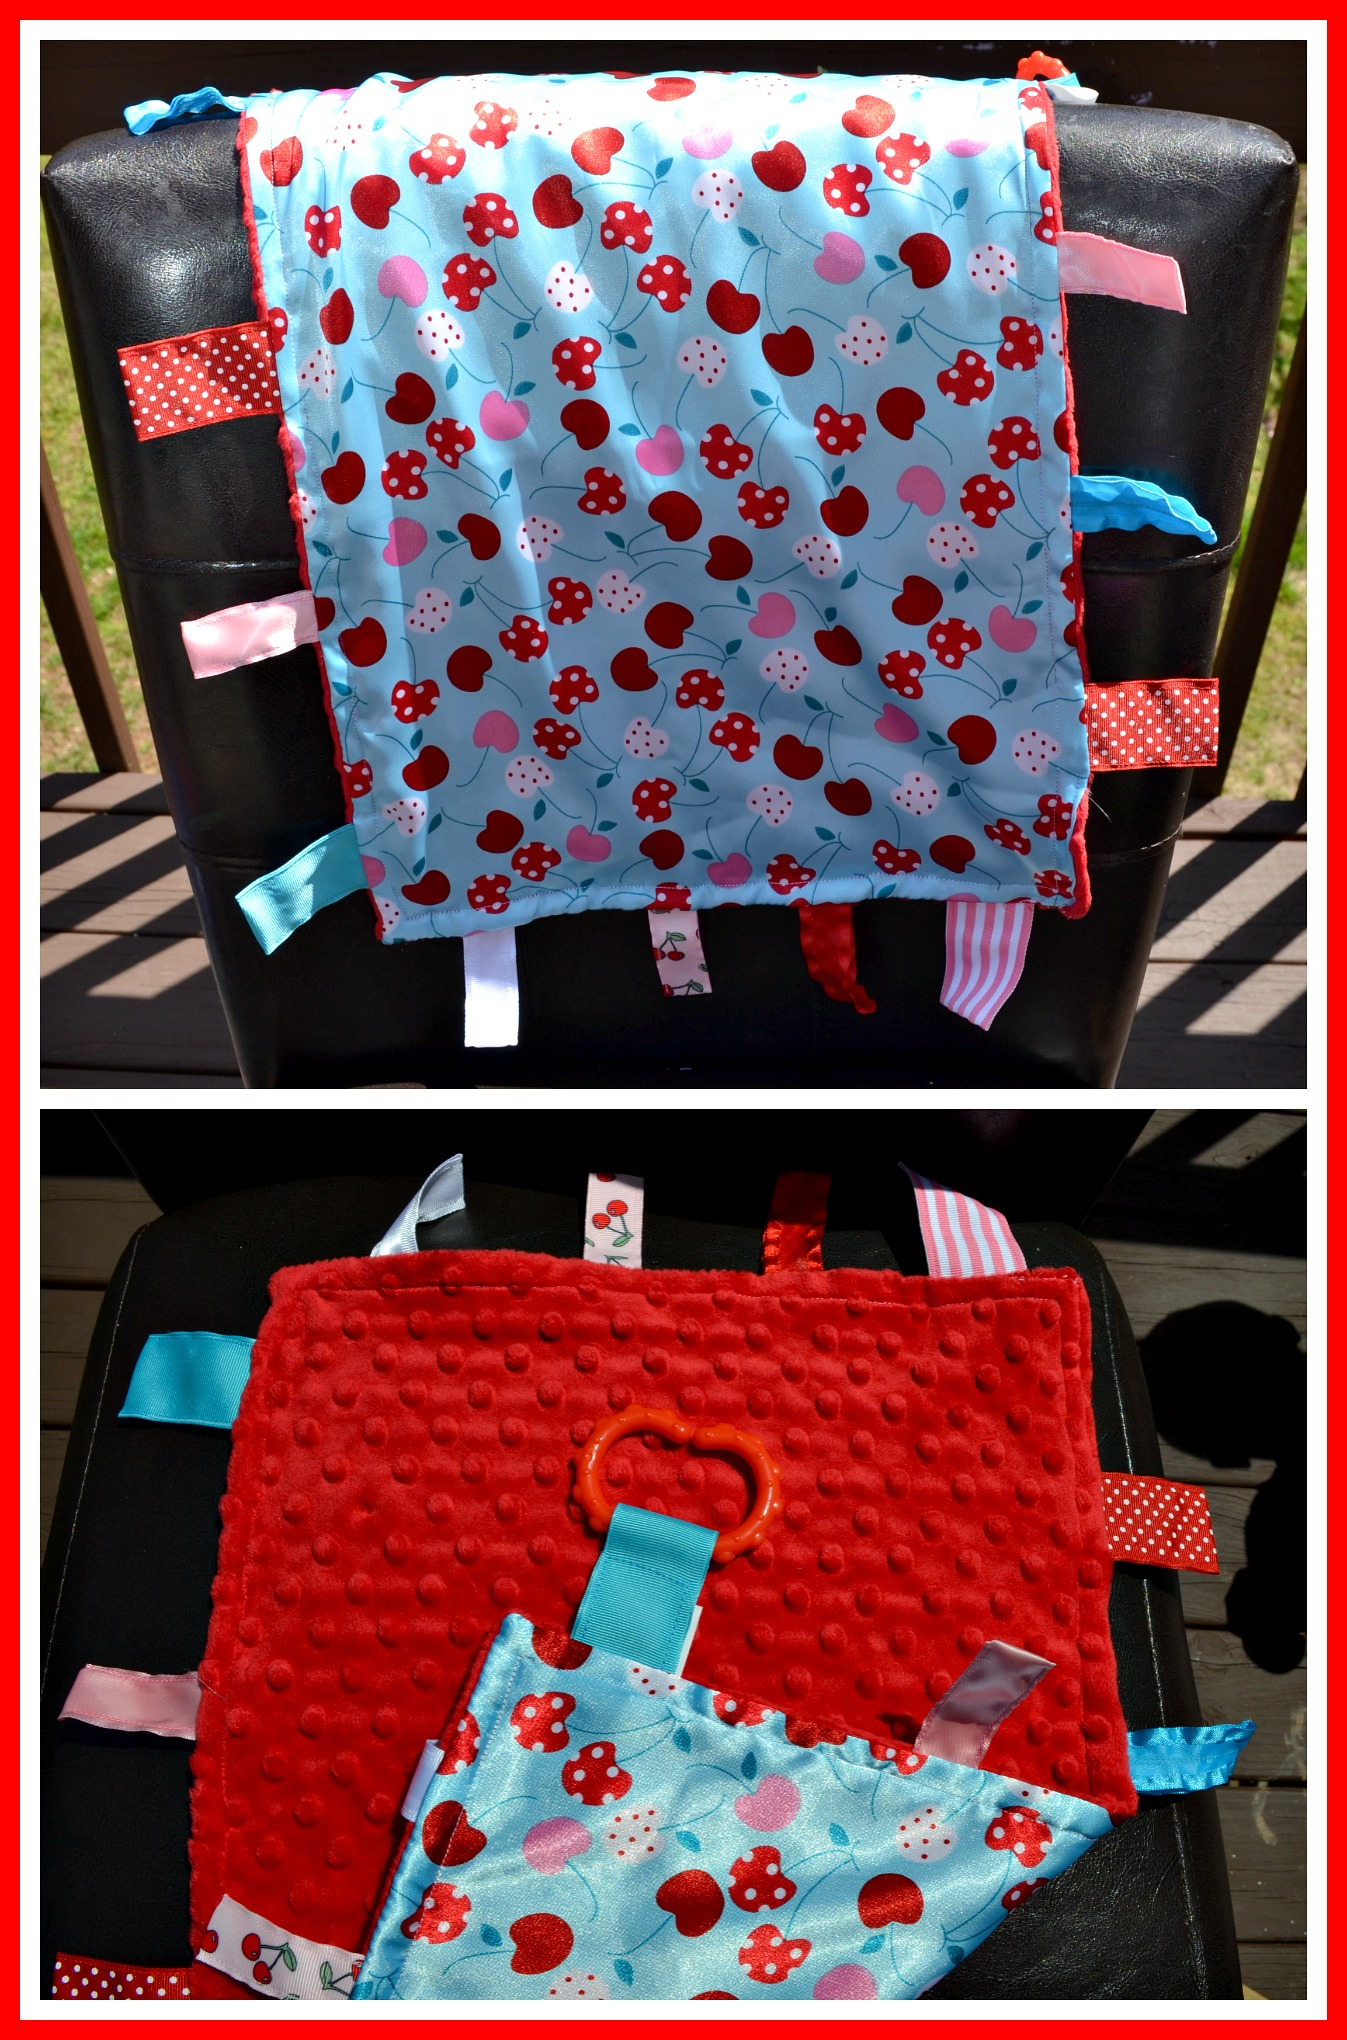 Baby Jack Blankets Review (Getting Ready For Baby Gift Guide)